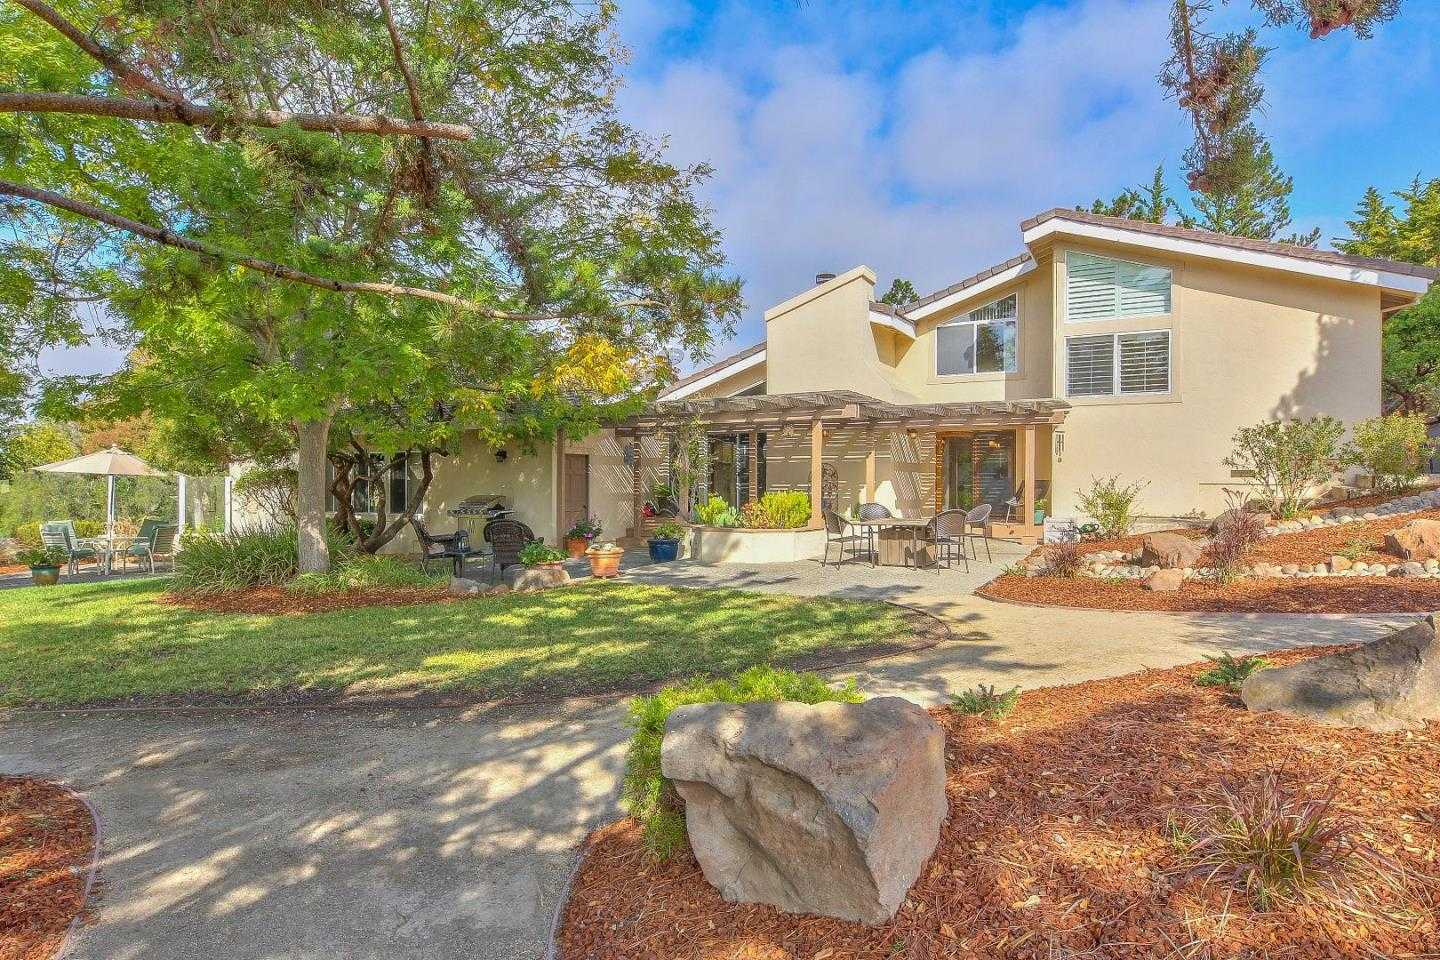 $1,395,000 - 3Br/3Ba -  for Sale in Monterey